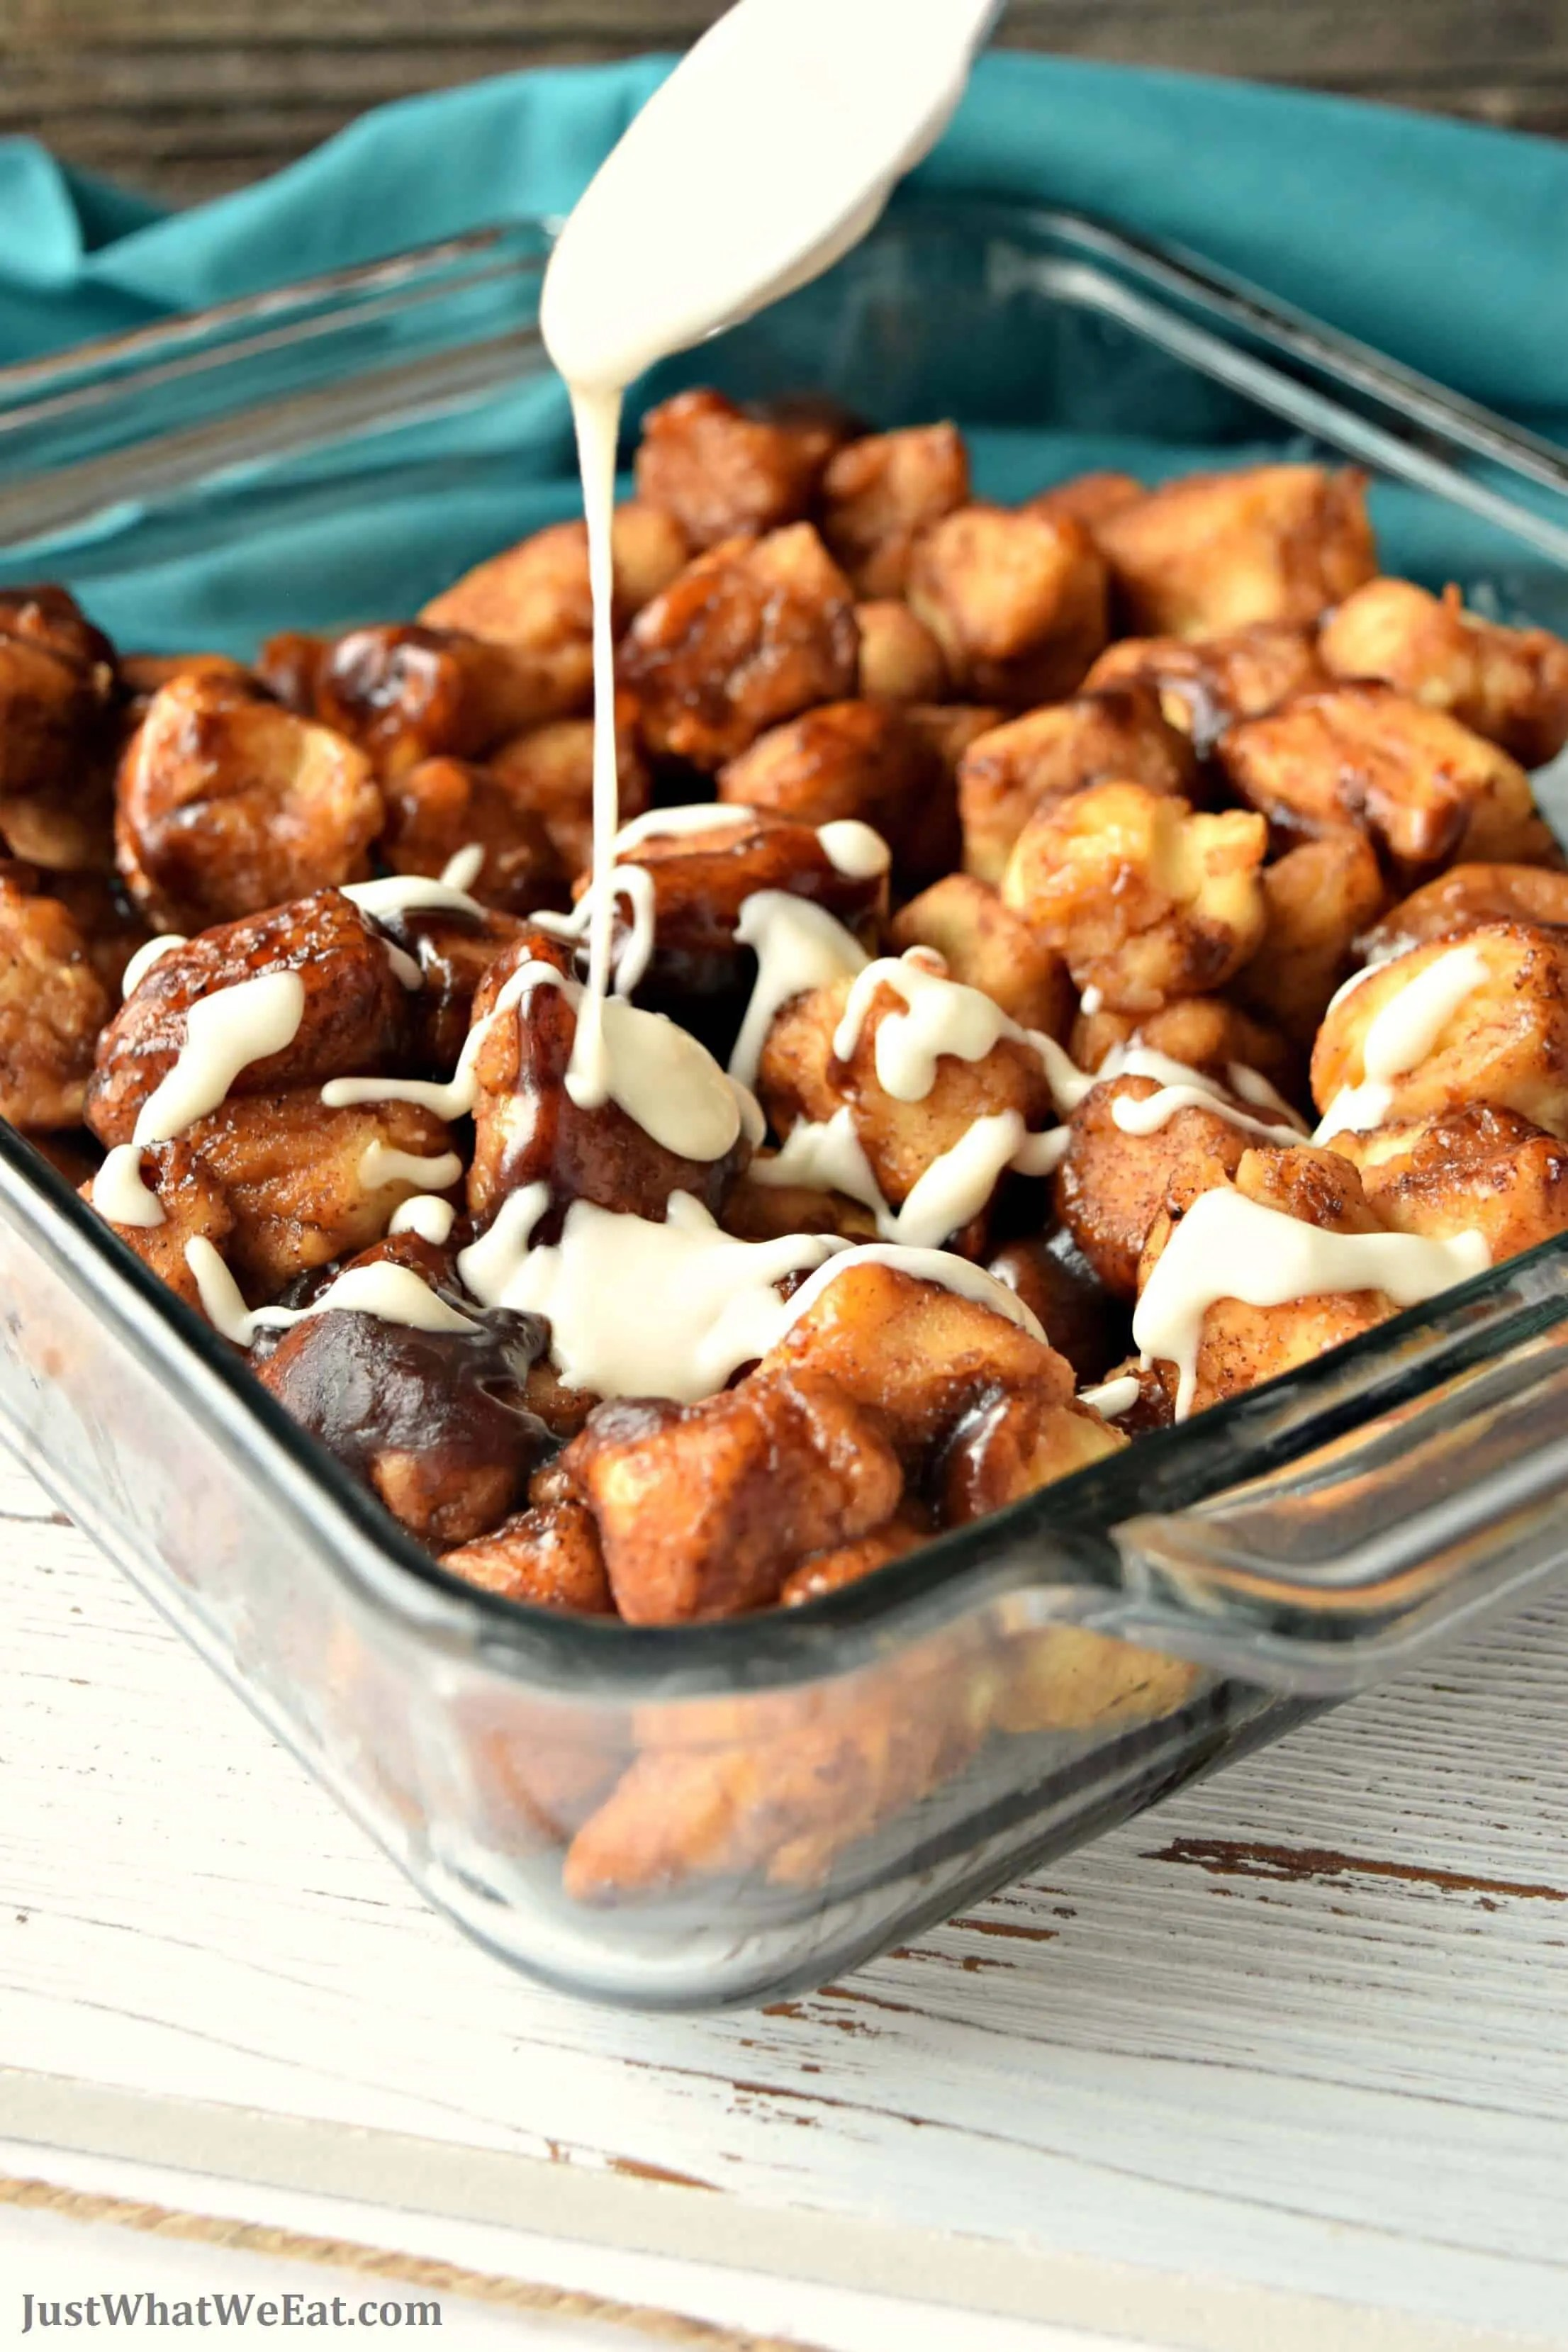 Monkey Bread - Gluten Free, Vegan, & Refined Sugar Free